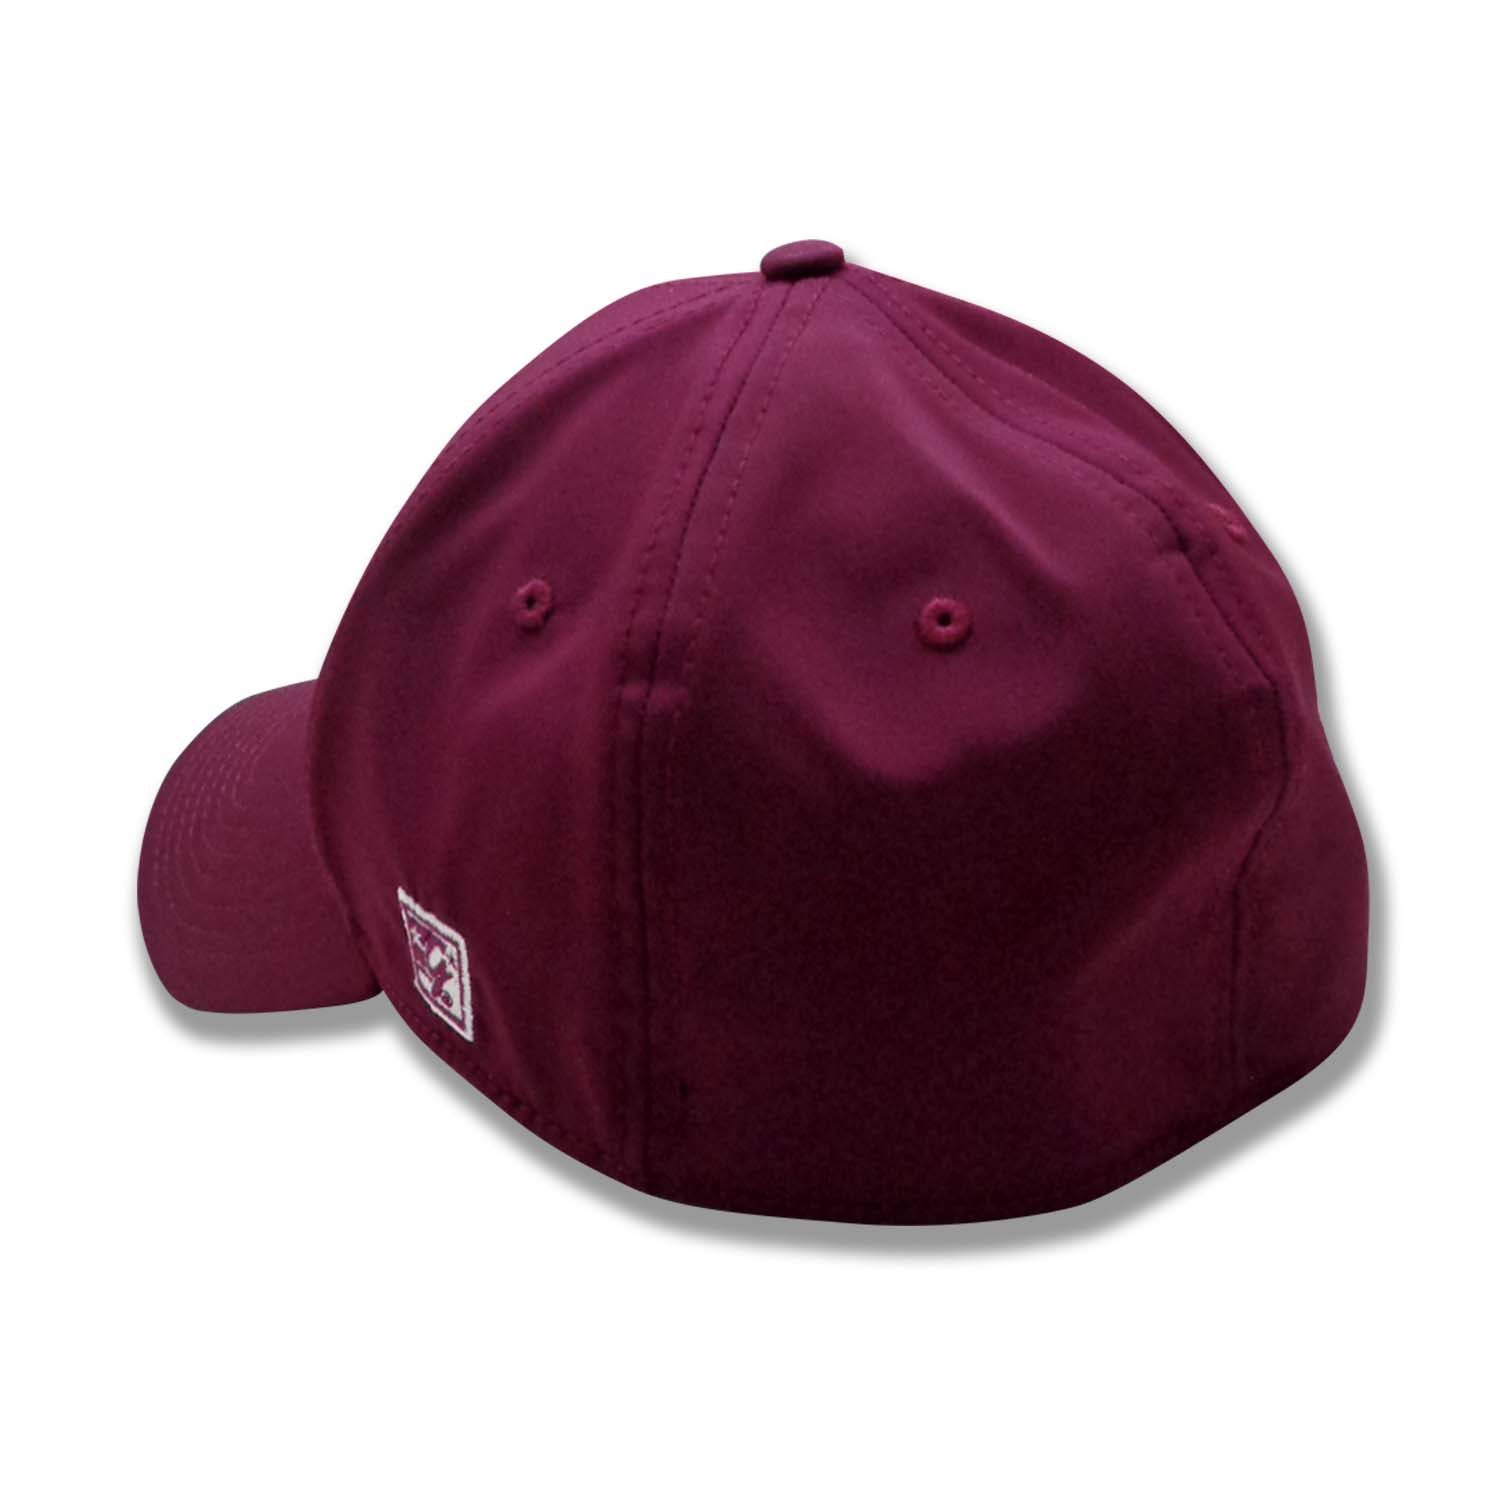 Alternative Image for the NEW 2019 ATHLETIC LOGO SOUTHERN ILLINOIS SALUKIS GAMECHANGER HAT product